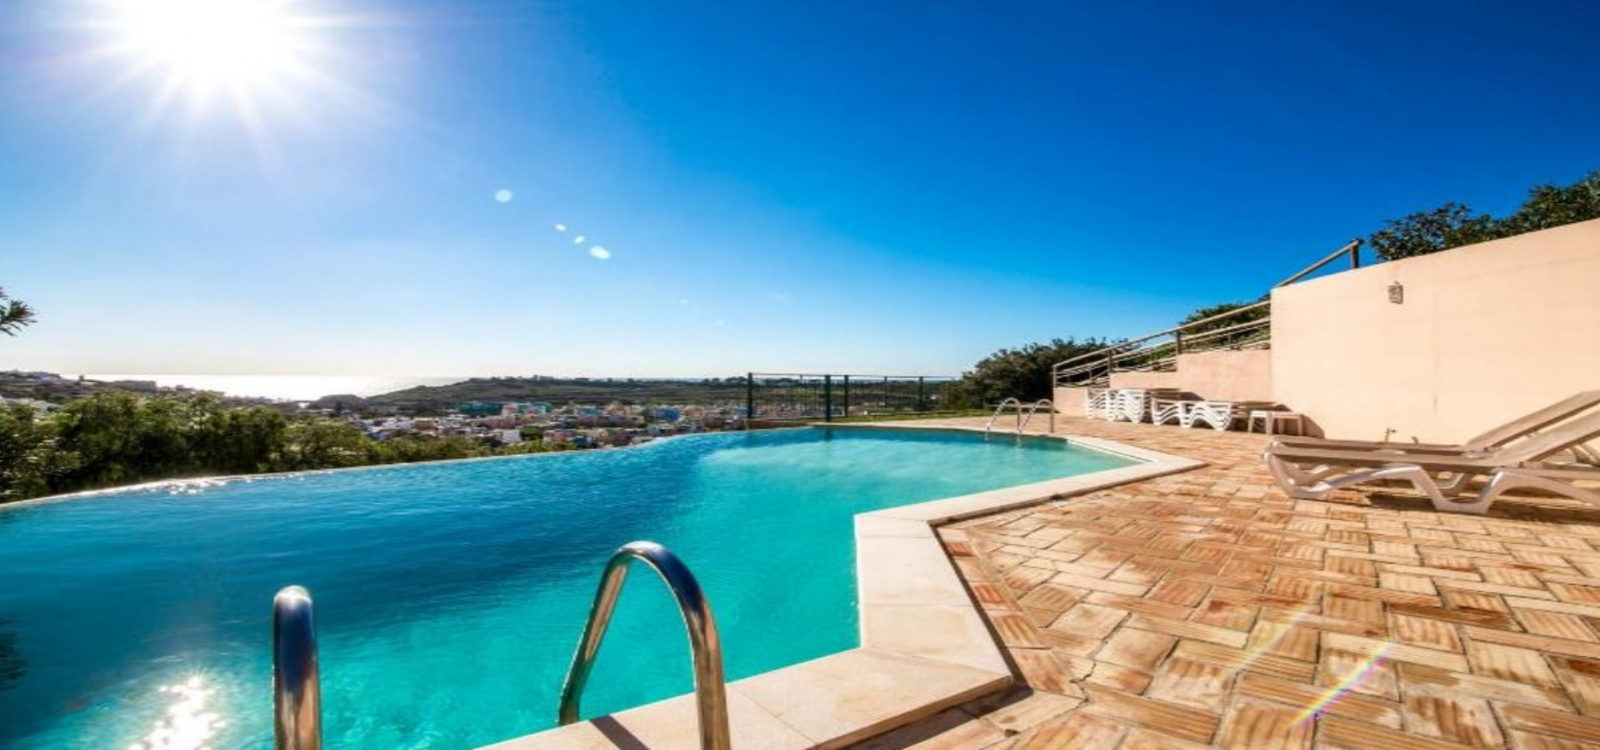 1 Bedrooms, Apartment, Vacation Rental, 1 Bathrooms, Listing ID 1016, Albufeira, Portugal,